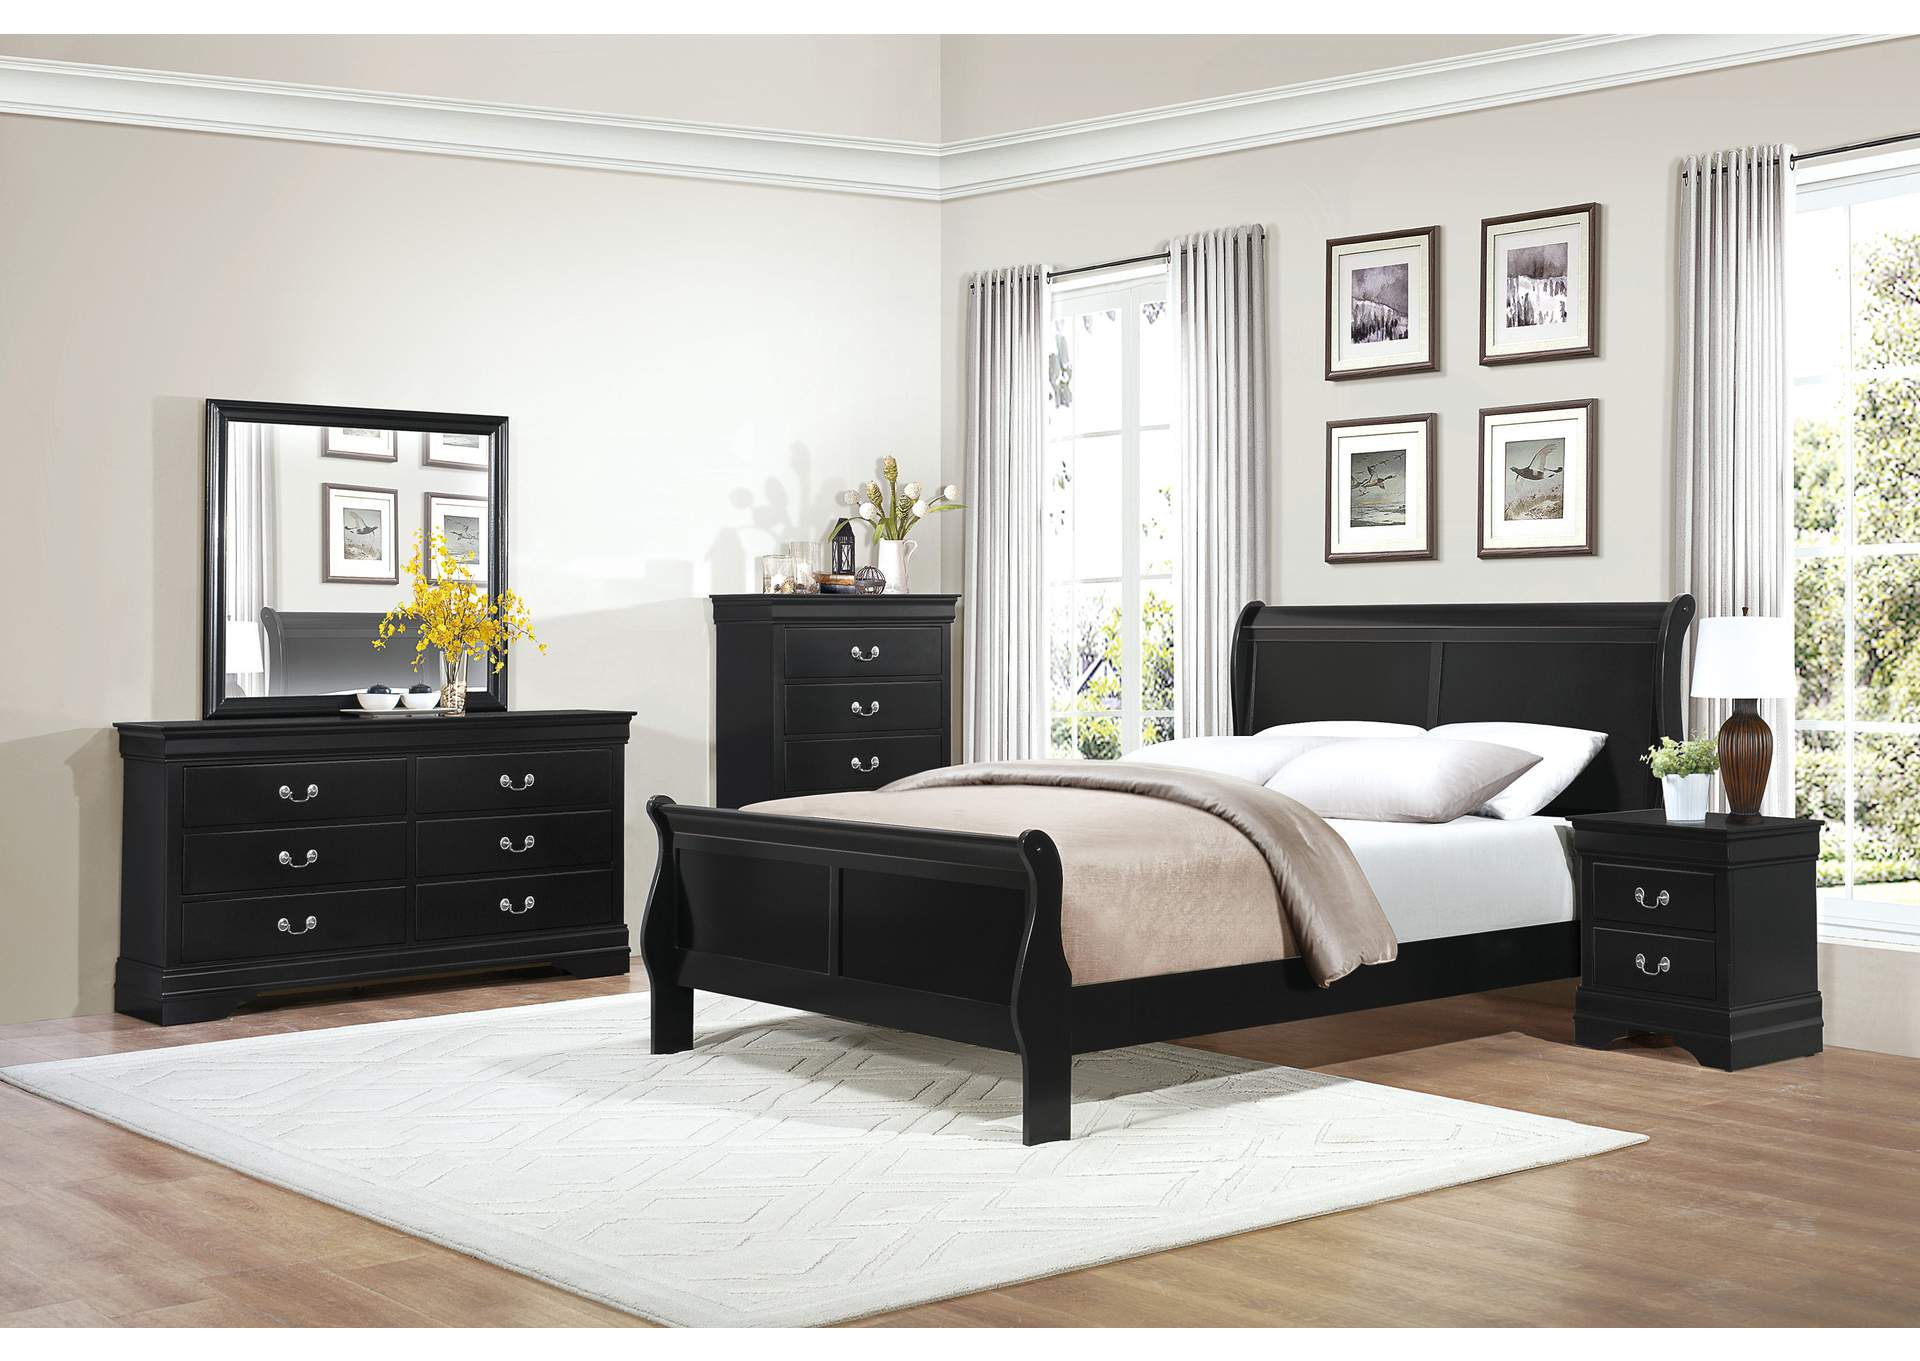 Mayville Burnished Black Queen Sleigh Bed w/ Dresser, Mirror, Drawer Chest and Nightstand,Homelegance